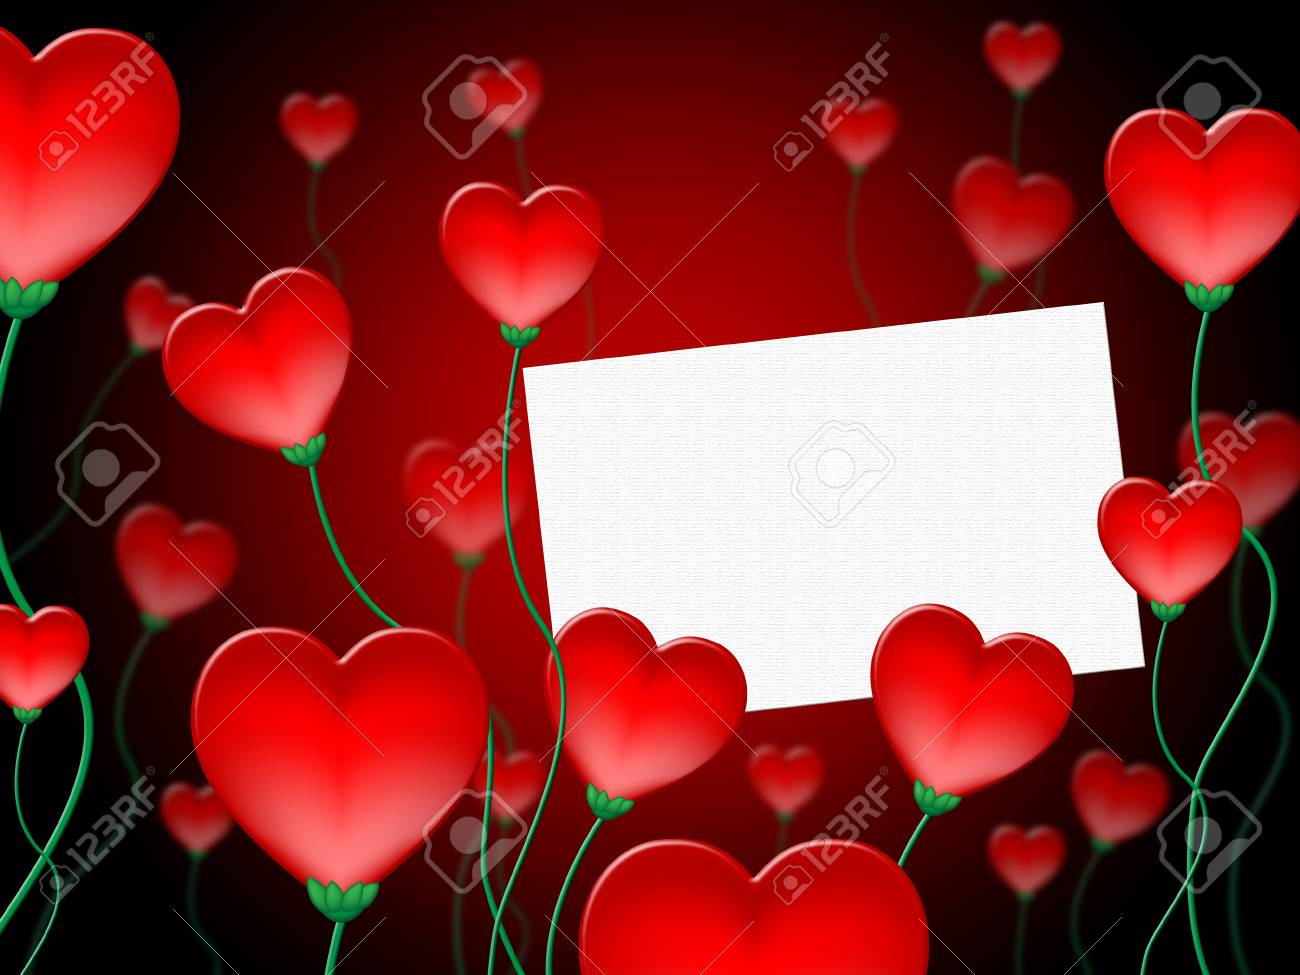 Heart Message Meaning Valentine Day And Affection Stock Photo